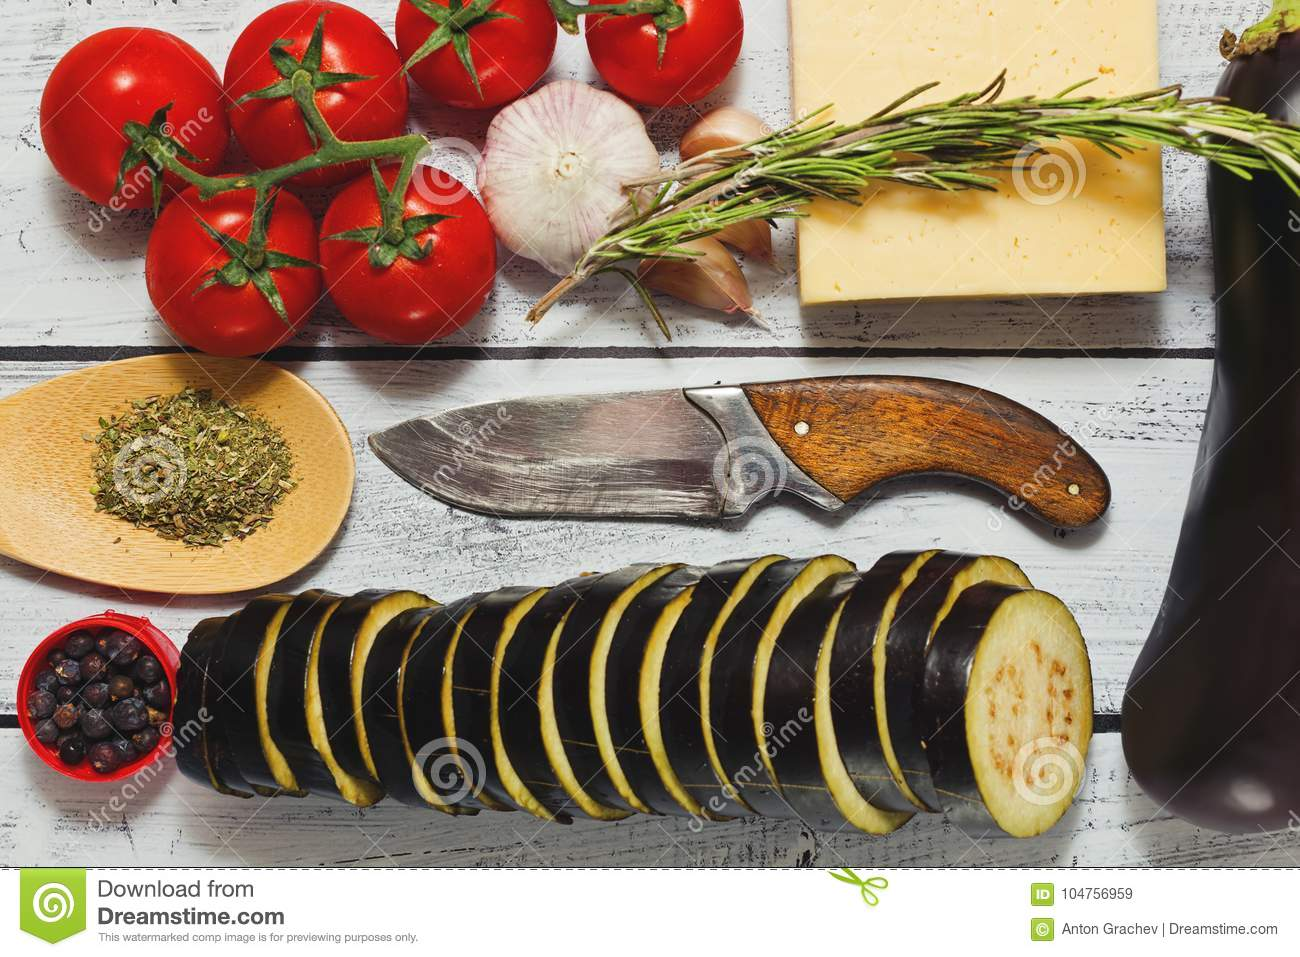 Ready For Cooking Eggplants With Tomatoes Stock Image Image Of Menu Organic 104756959